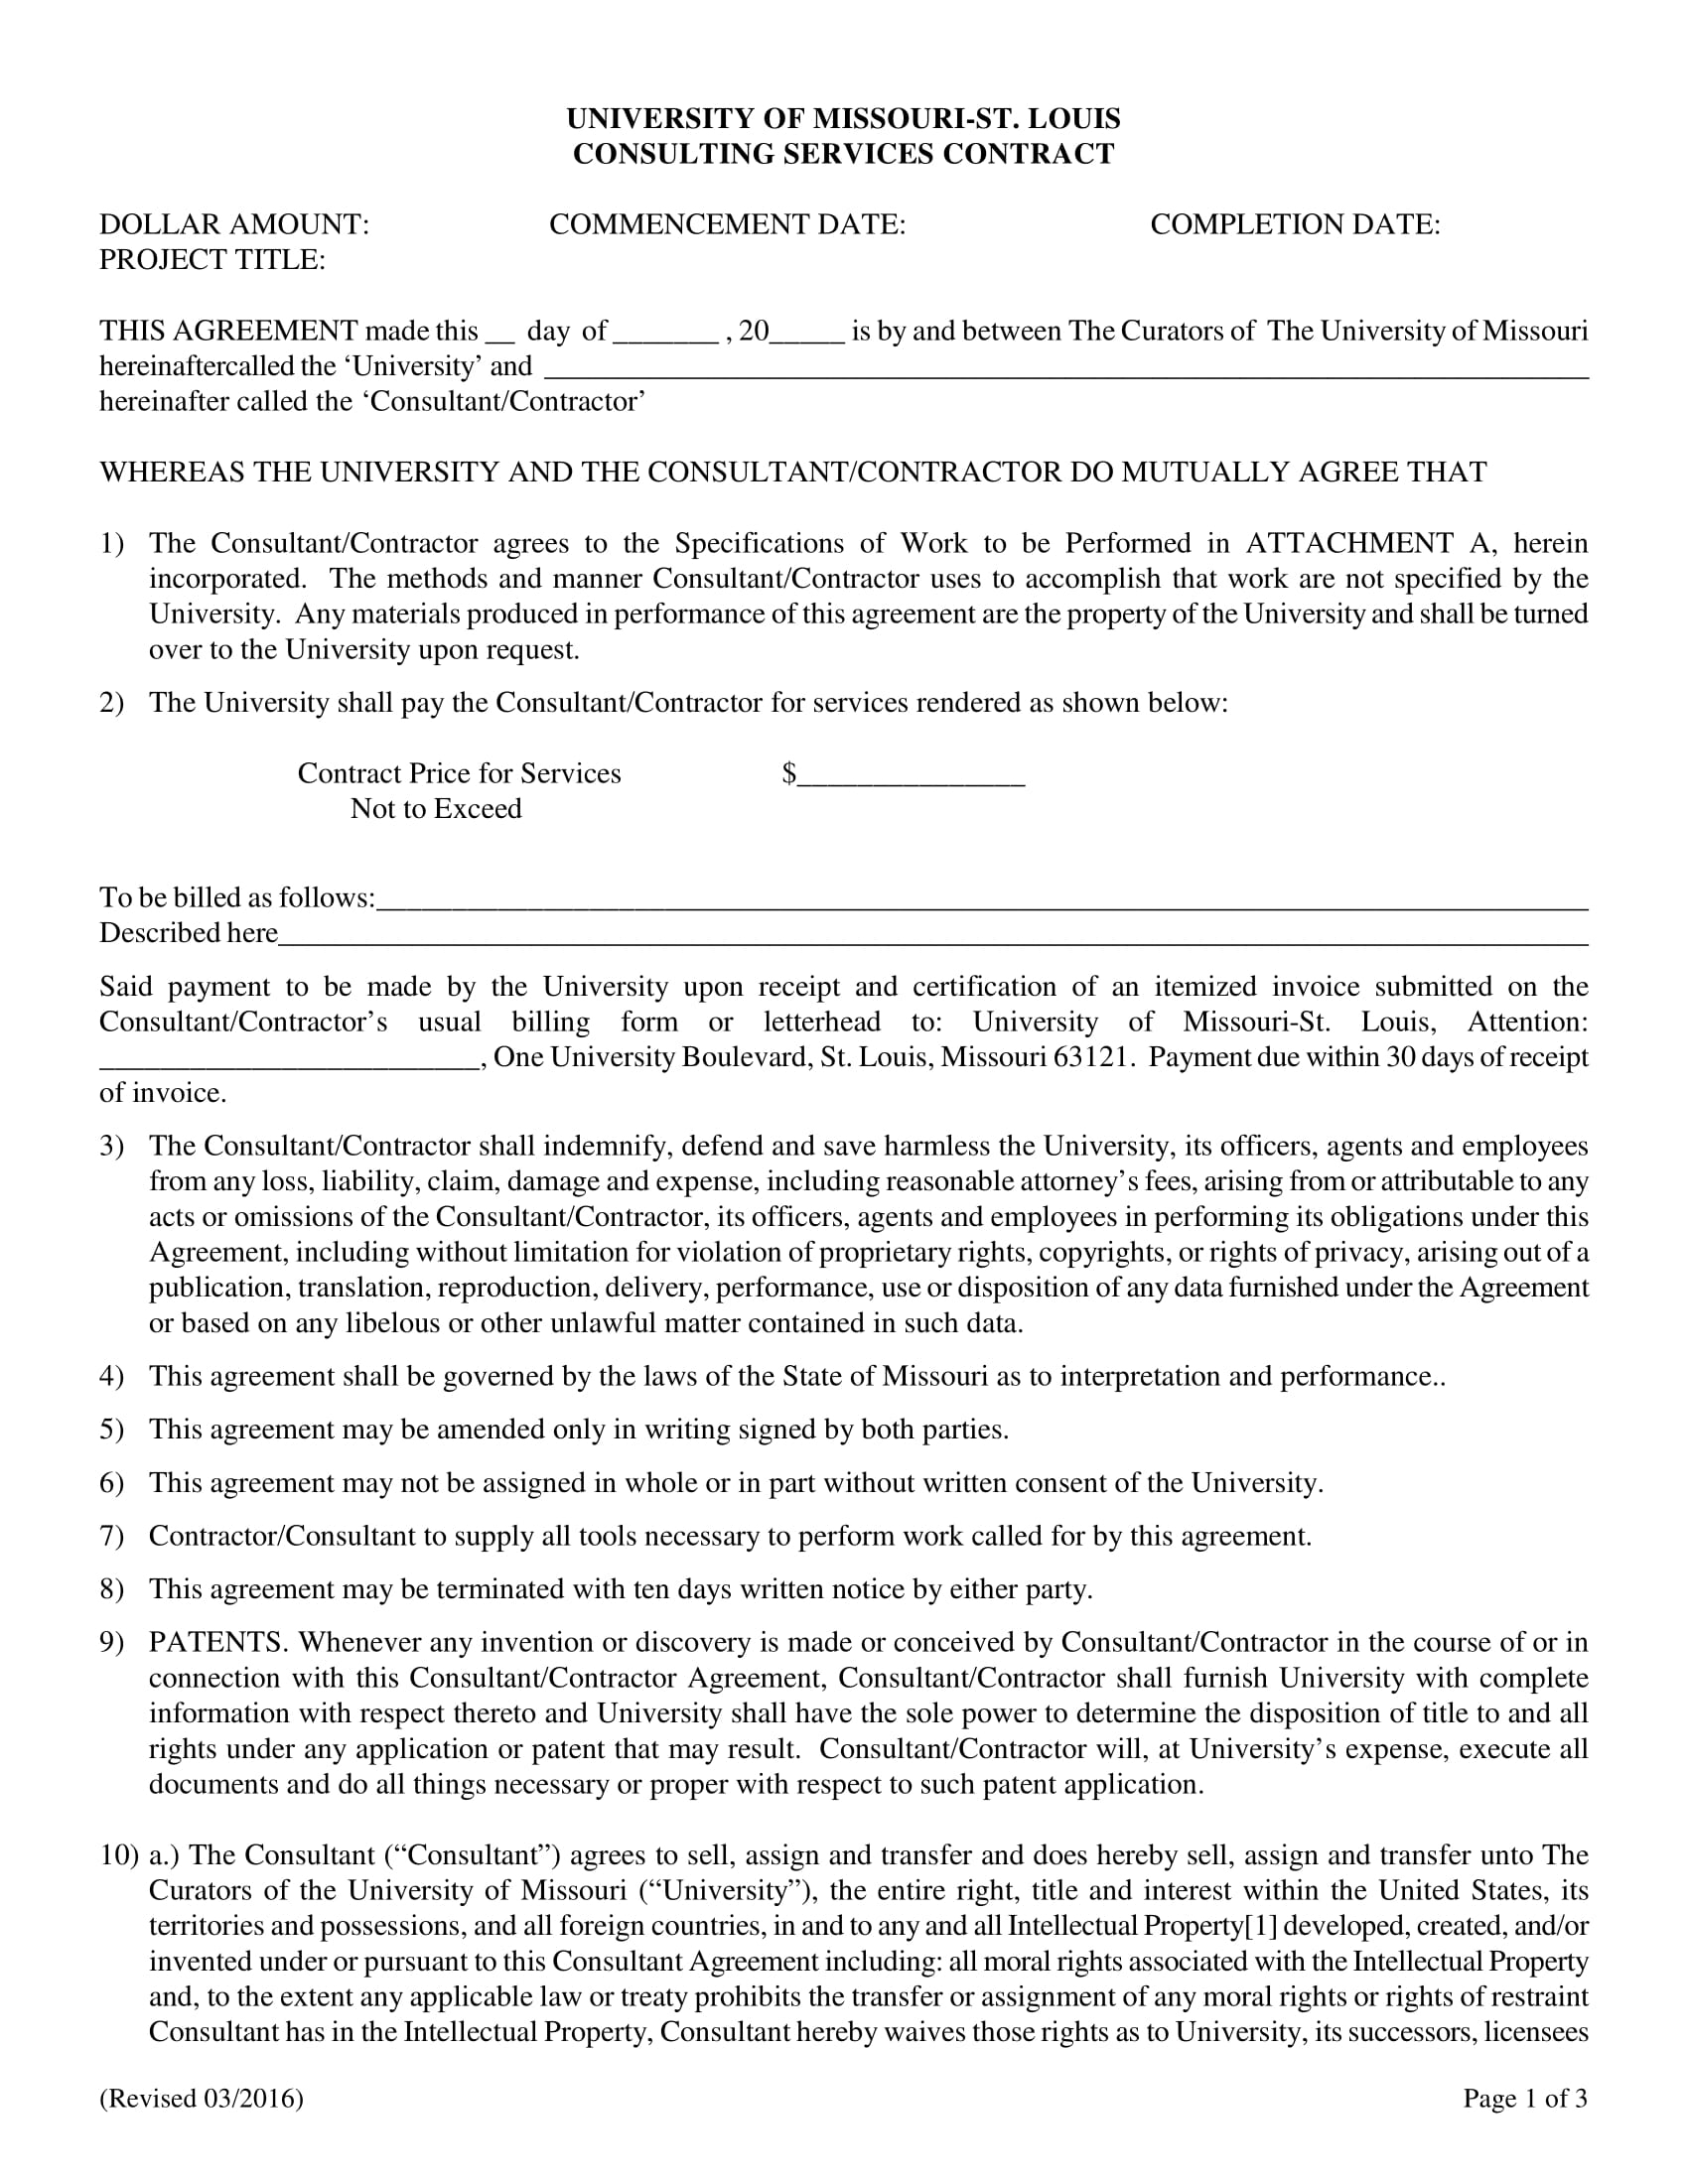 university consulting services contract form 1